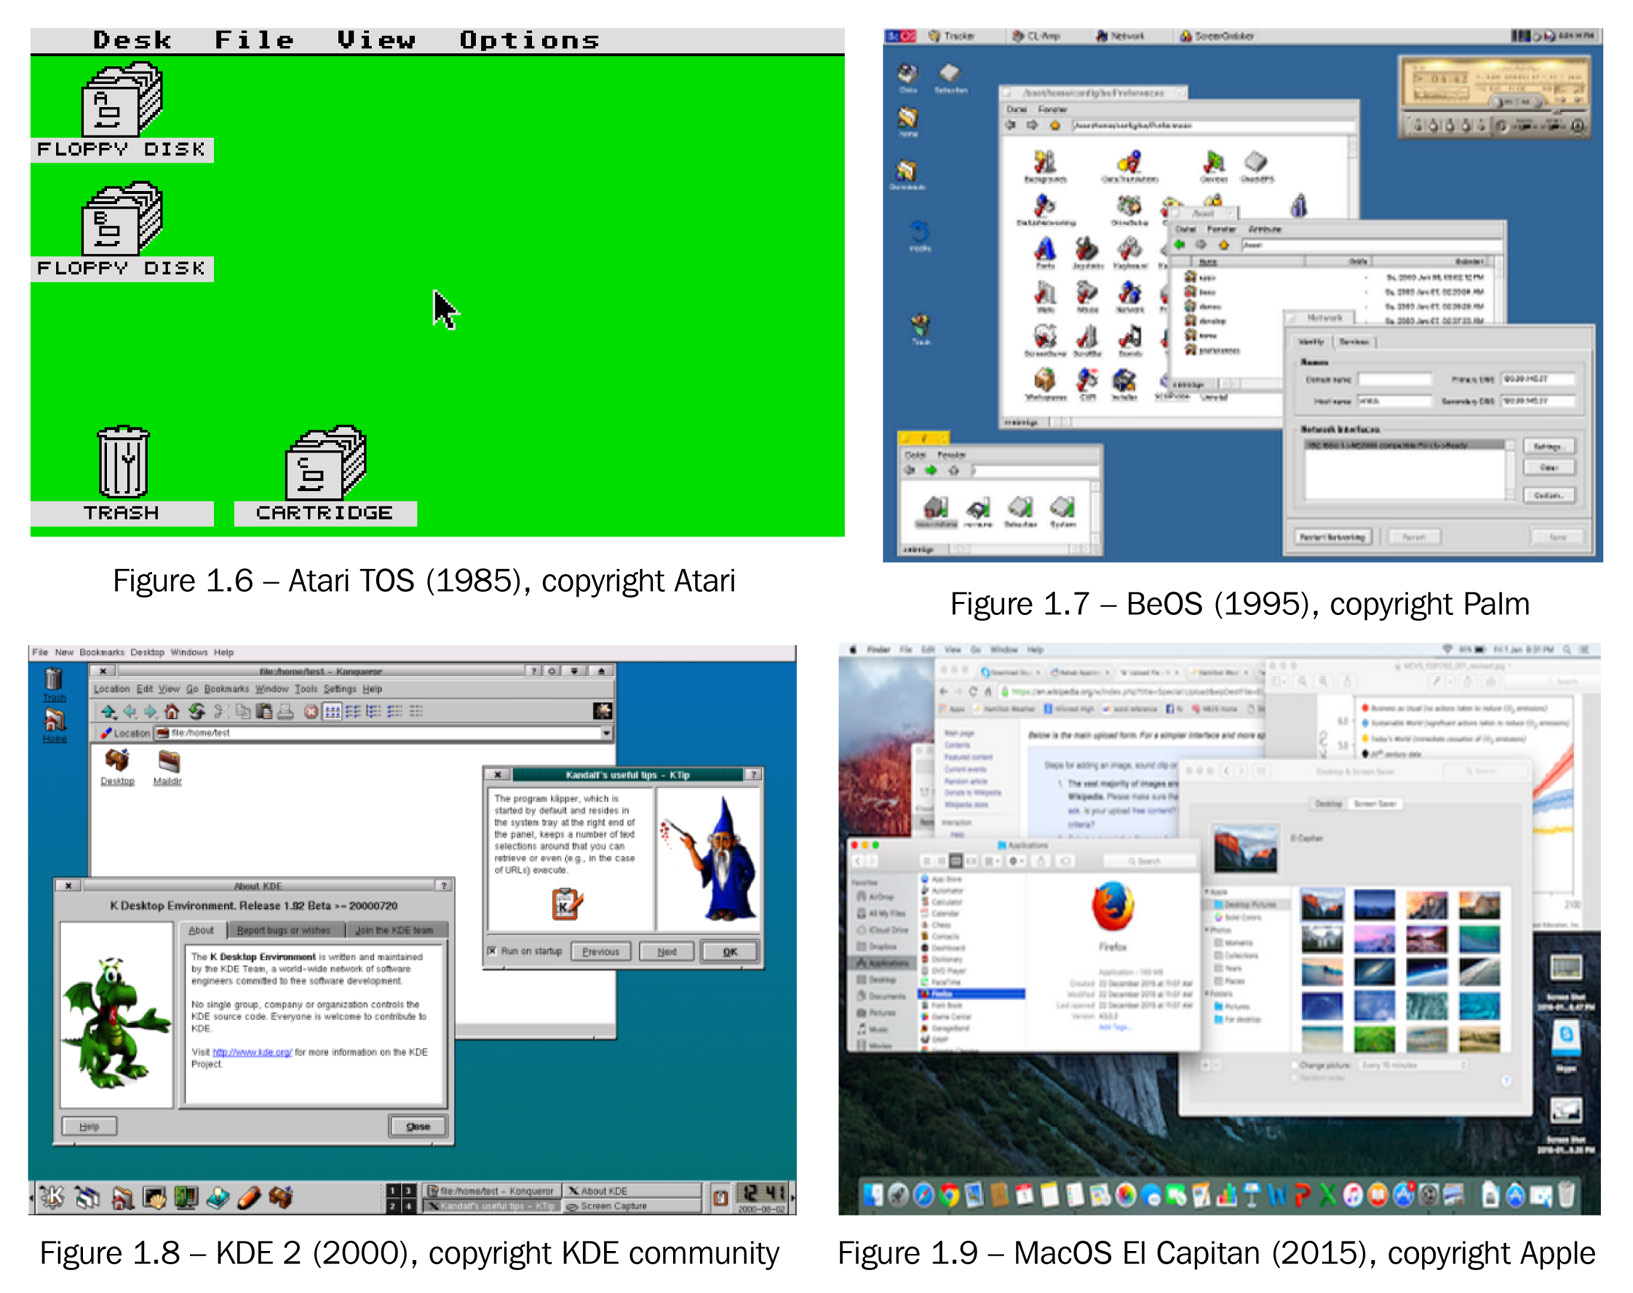 Desktop screenshots from various operating systems 1985-2015. Each image has been used with the required permission under fair use policies